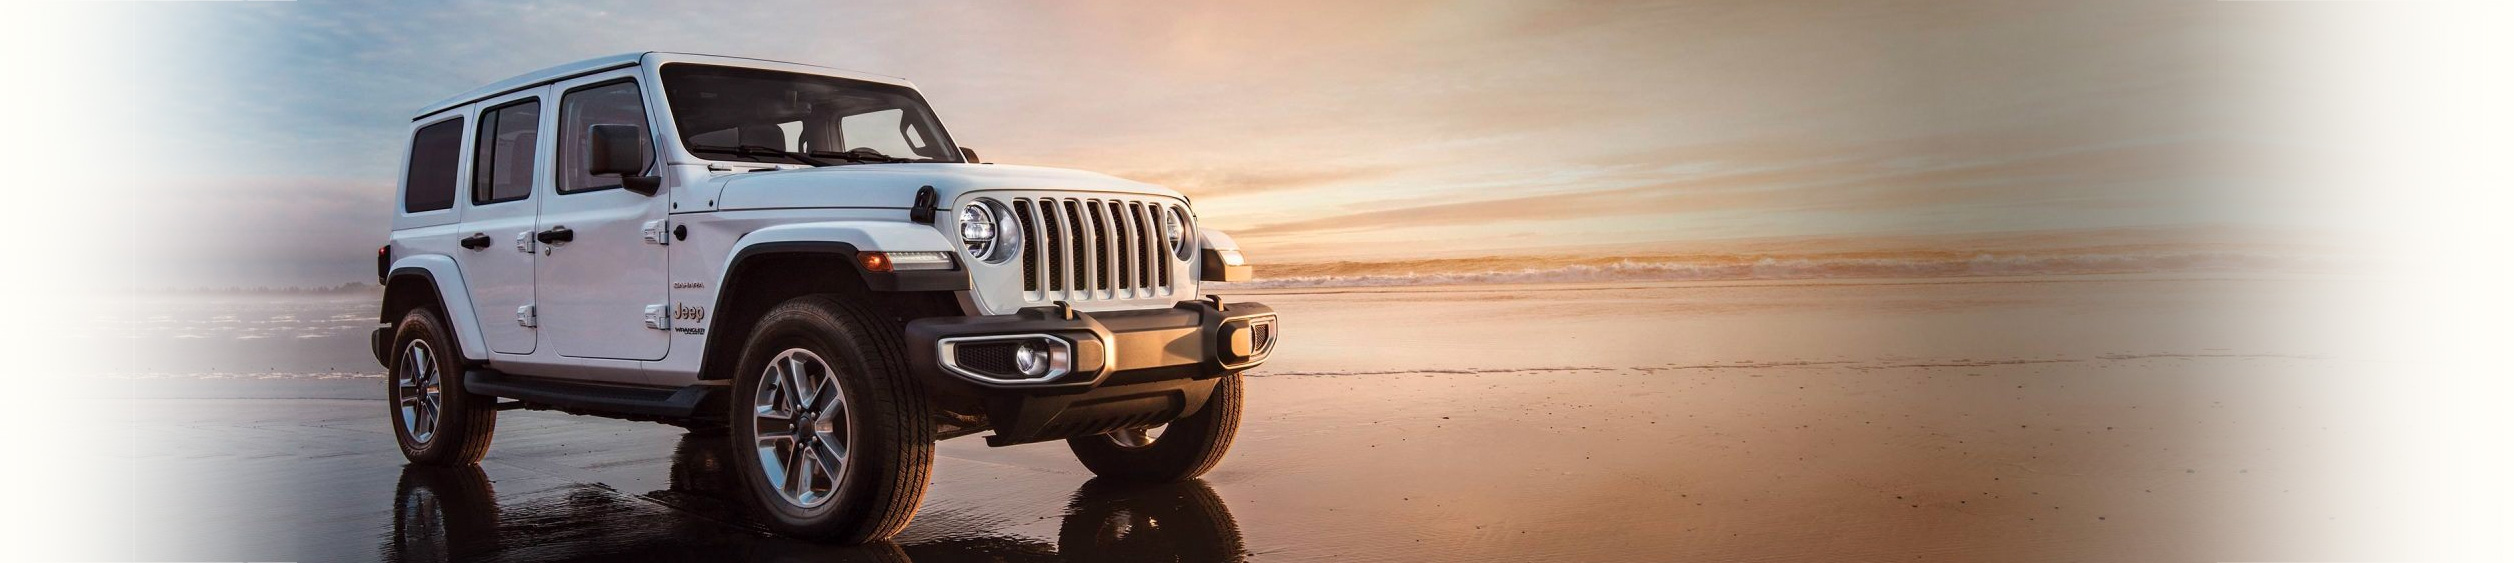 Jeep Vehicle Models | Southtown Chrysler in Alberta